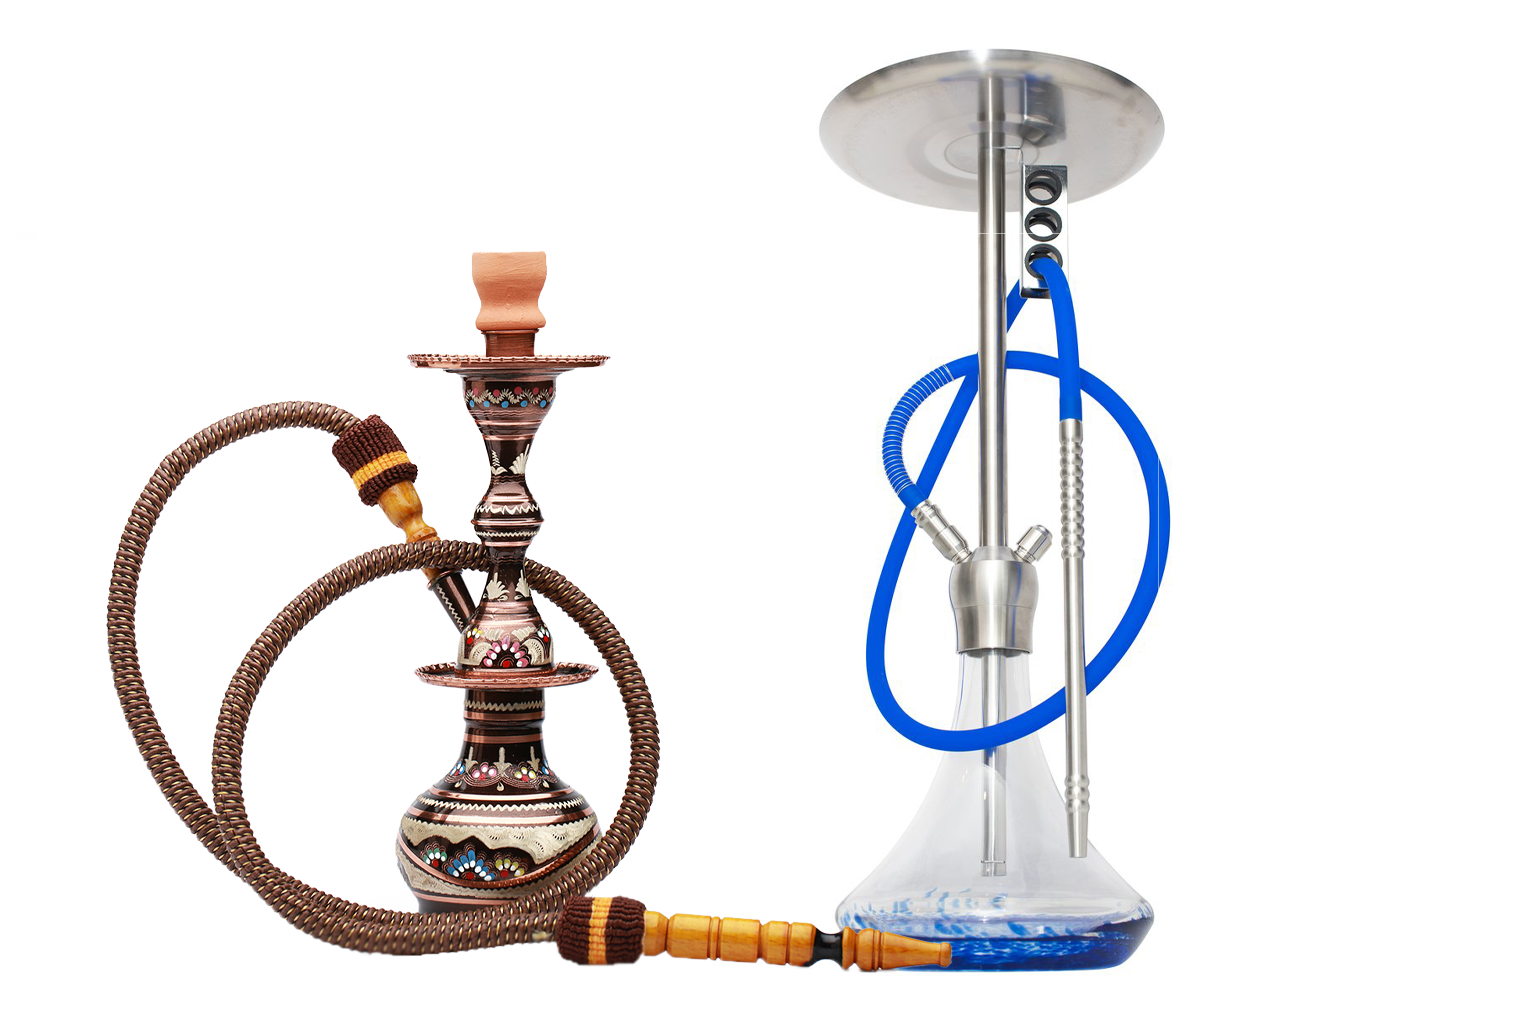 Image of traditional hookah pipe and Shisha Works modern hookah pipe